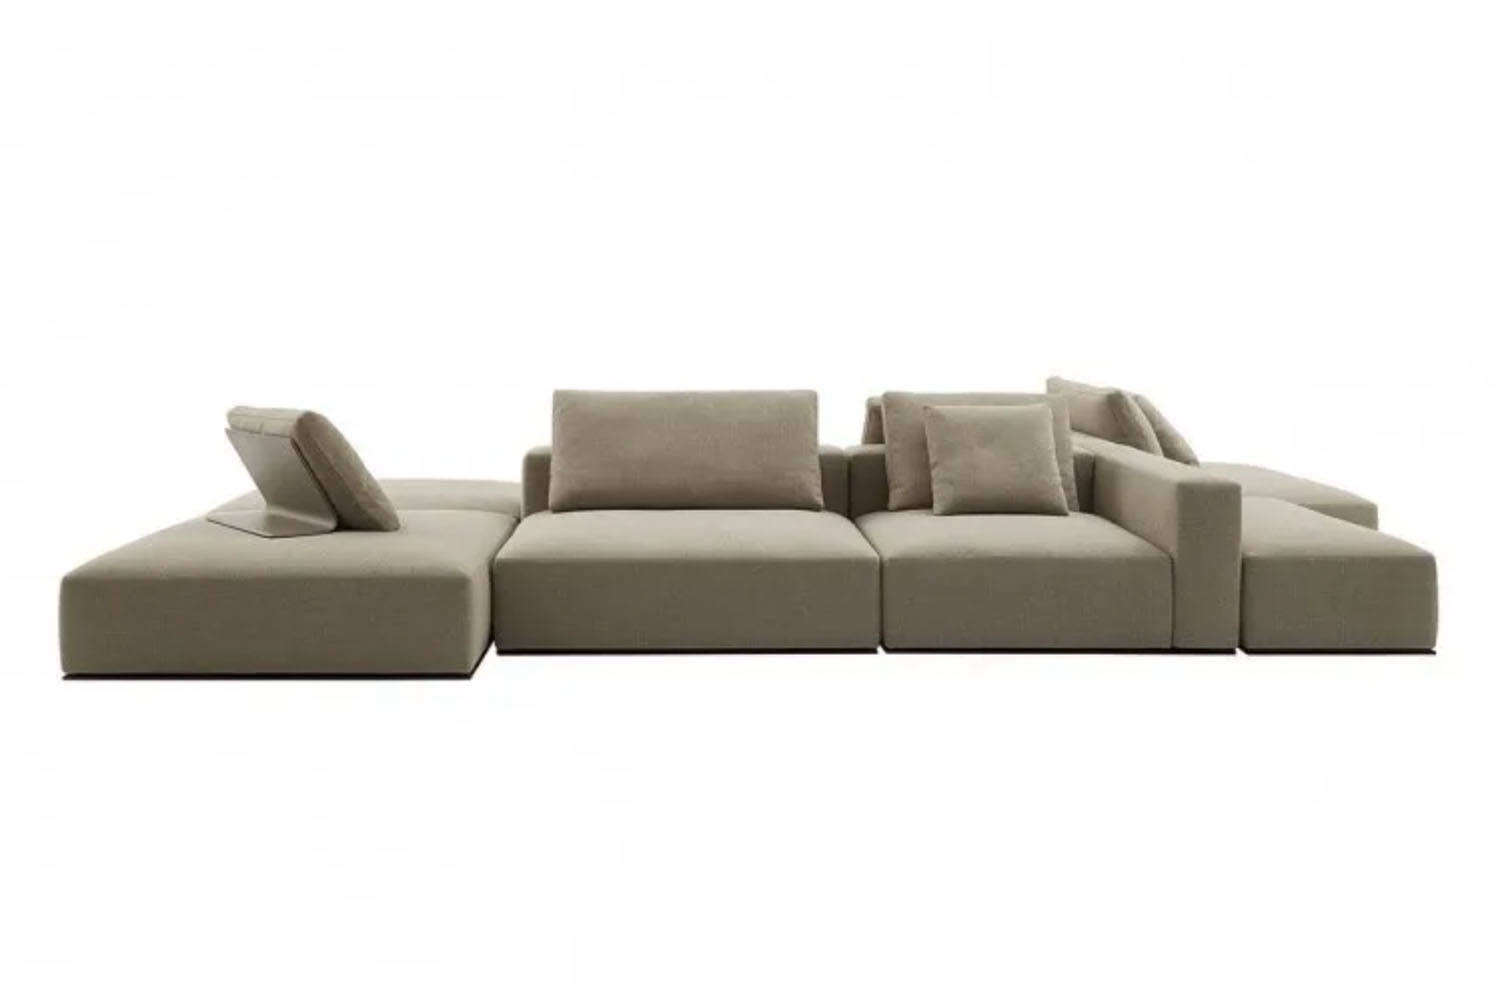 Designed by French architect Jean-Marie Massaud for Poliform, the Westside Sofa is available in fabric or leather upholstery and in a wide variety of configurations. Contact dePlain for pricing and availability.